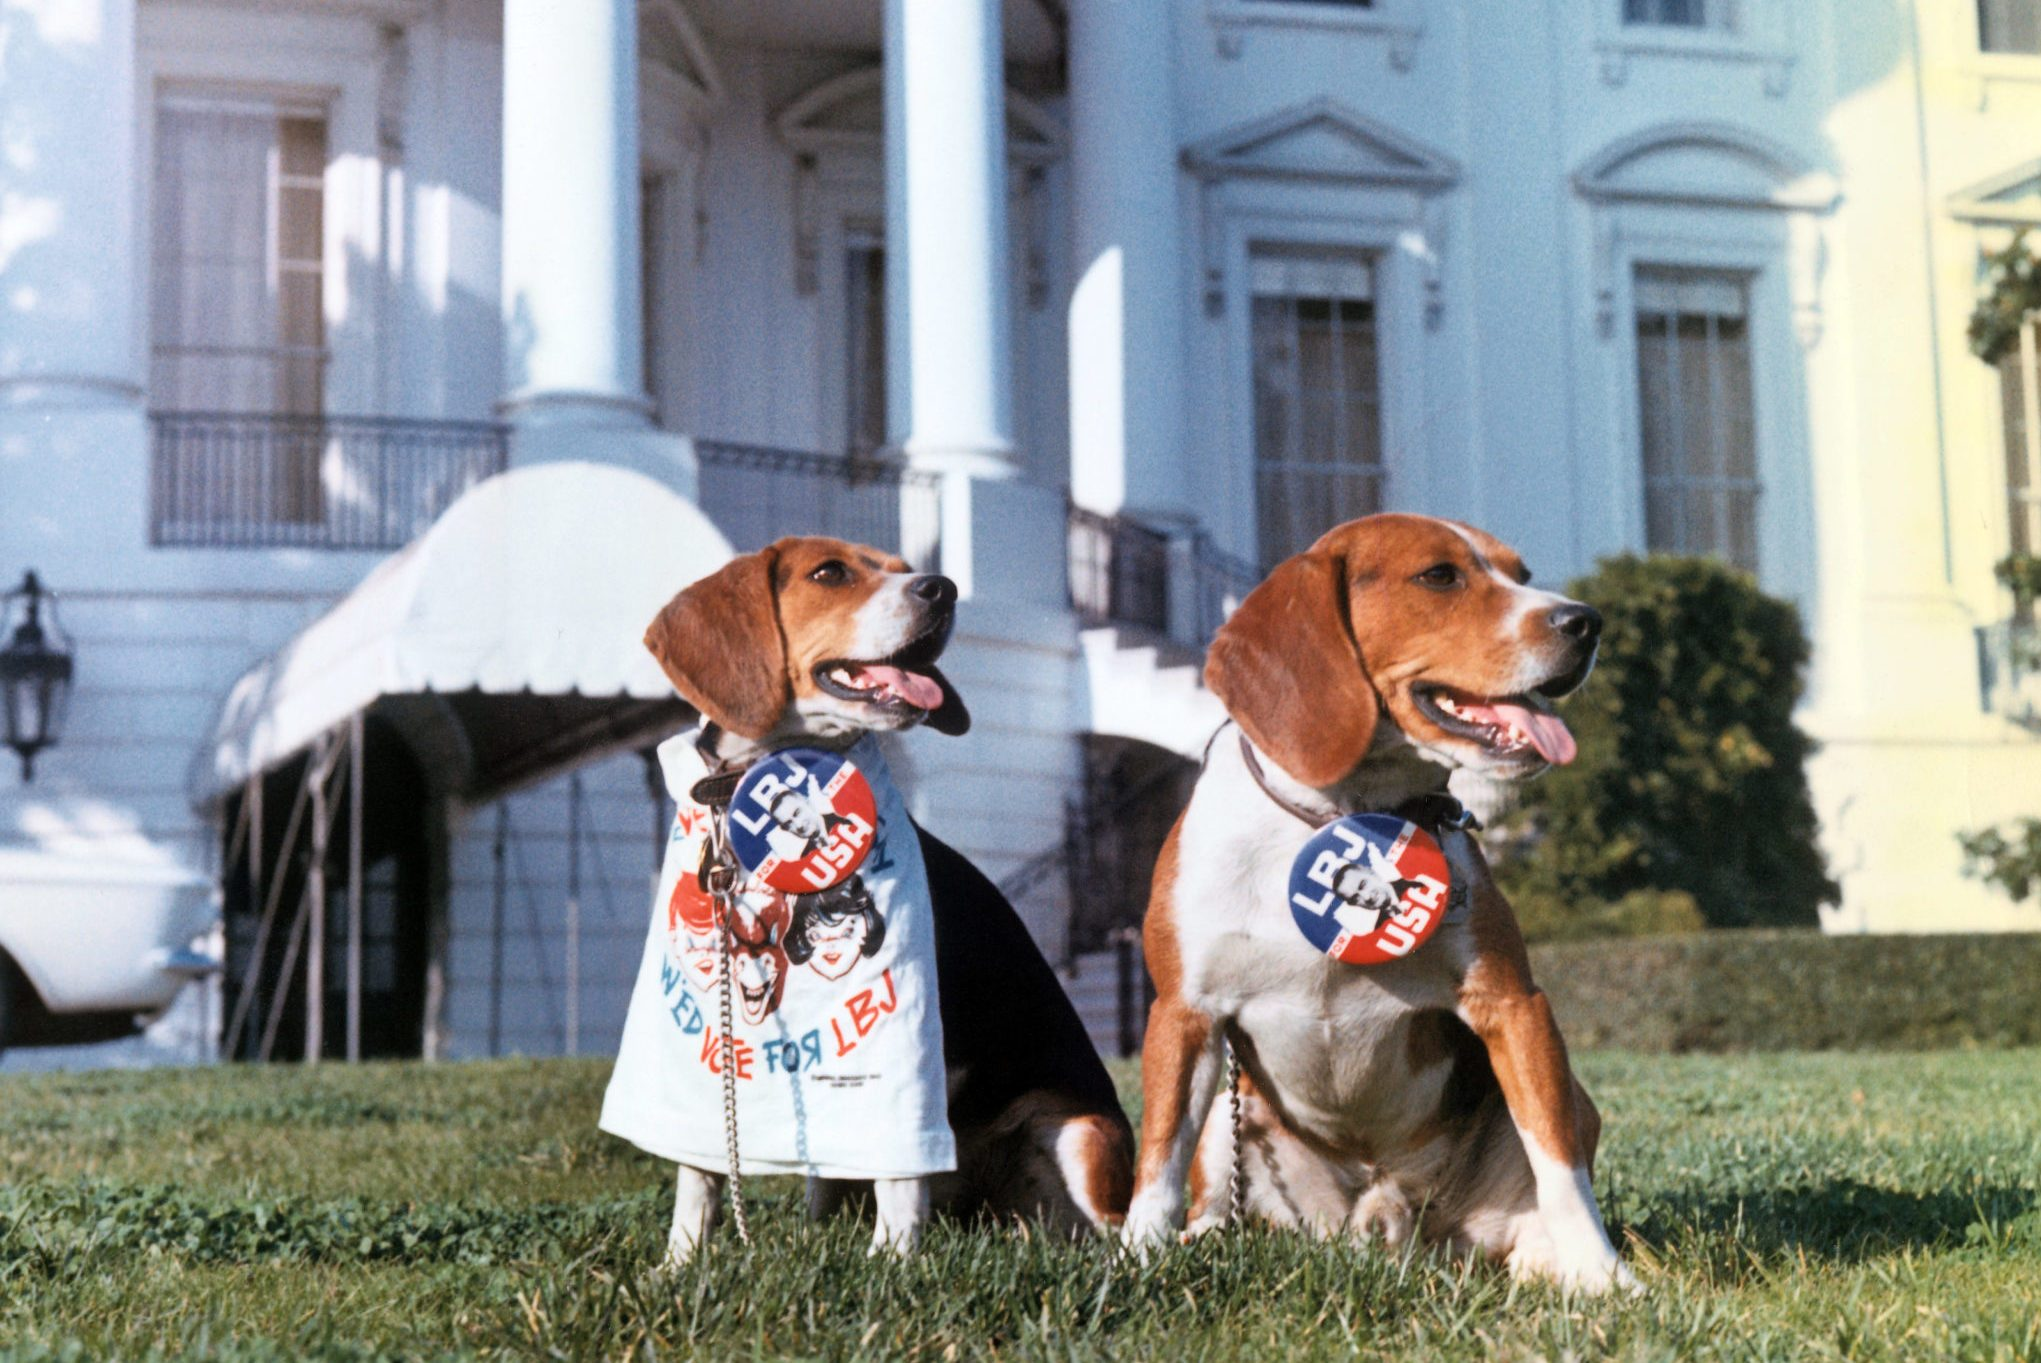 Beagles Campaigning for Lyndon B Johnson at White House